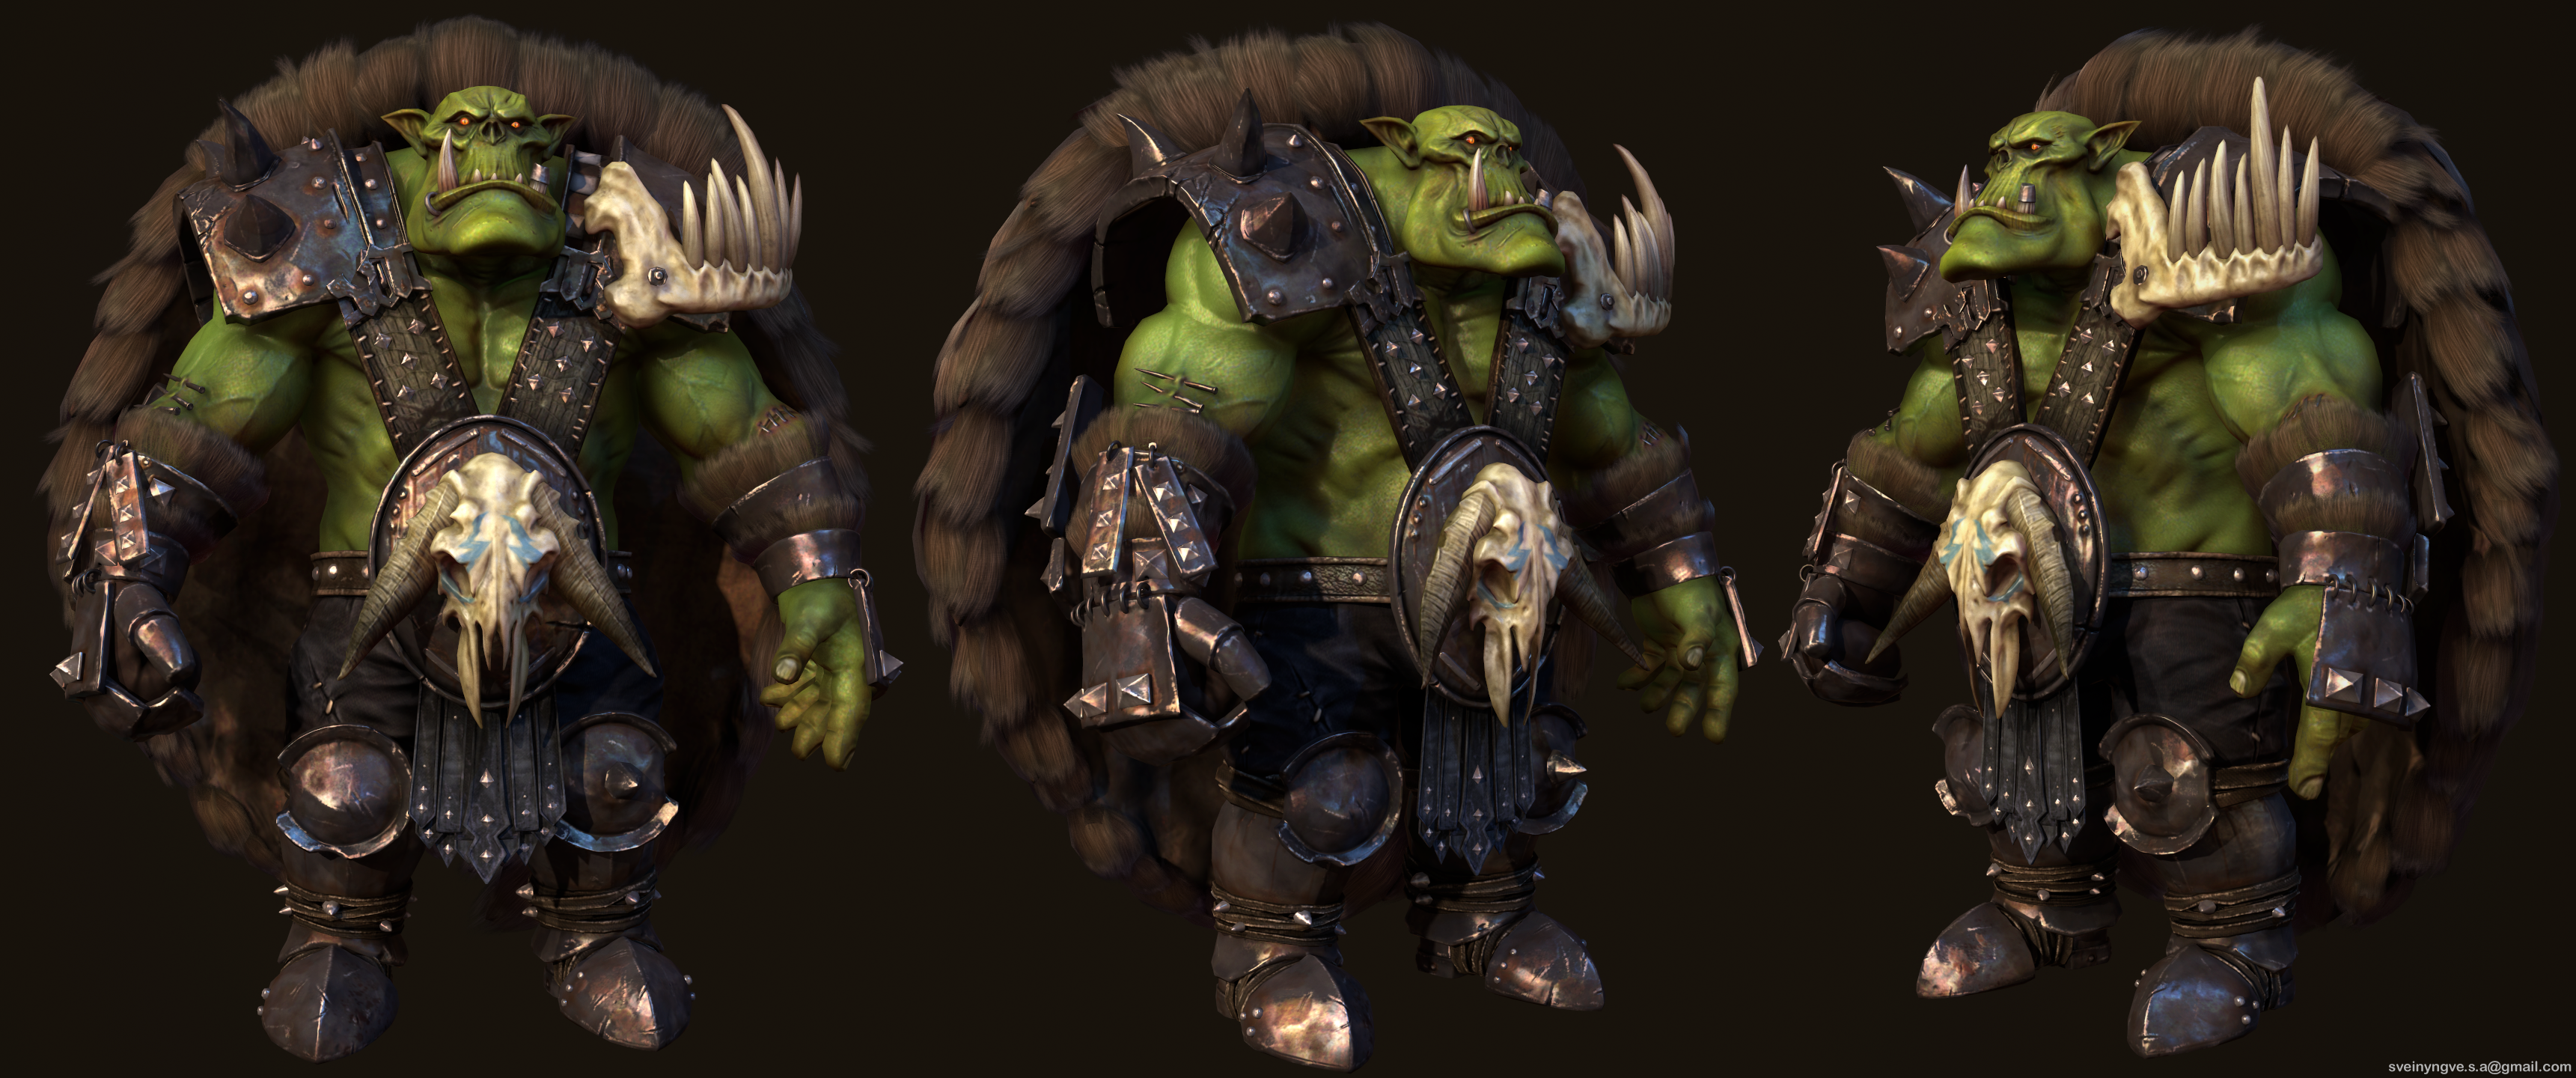 ork_picture3.png